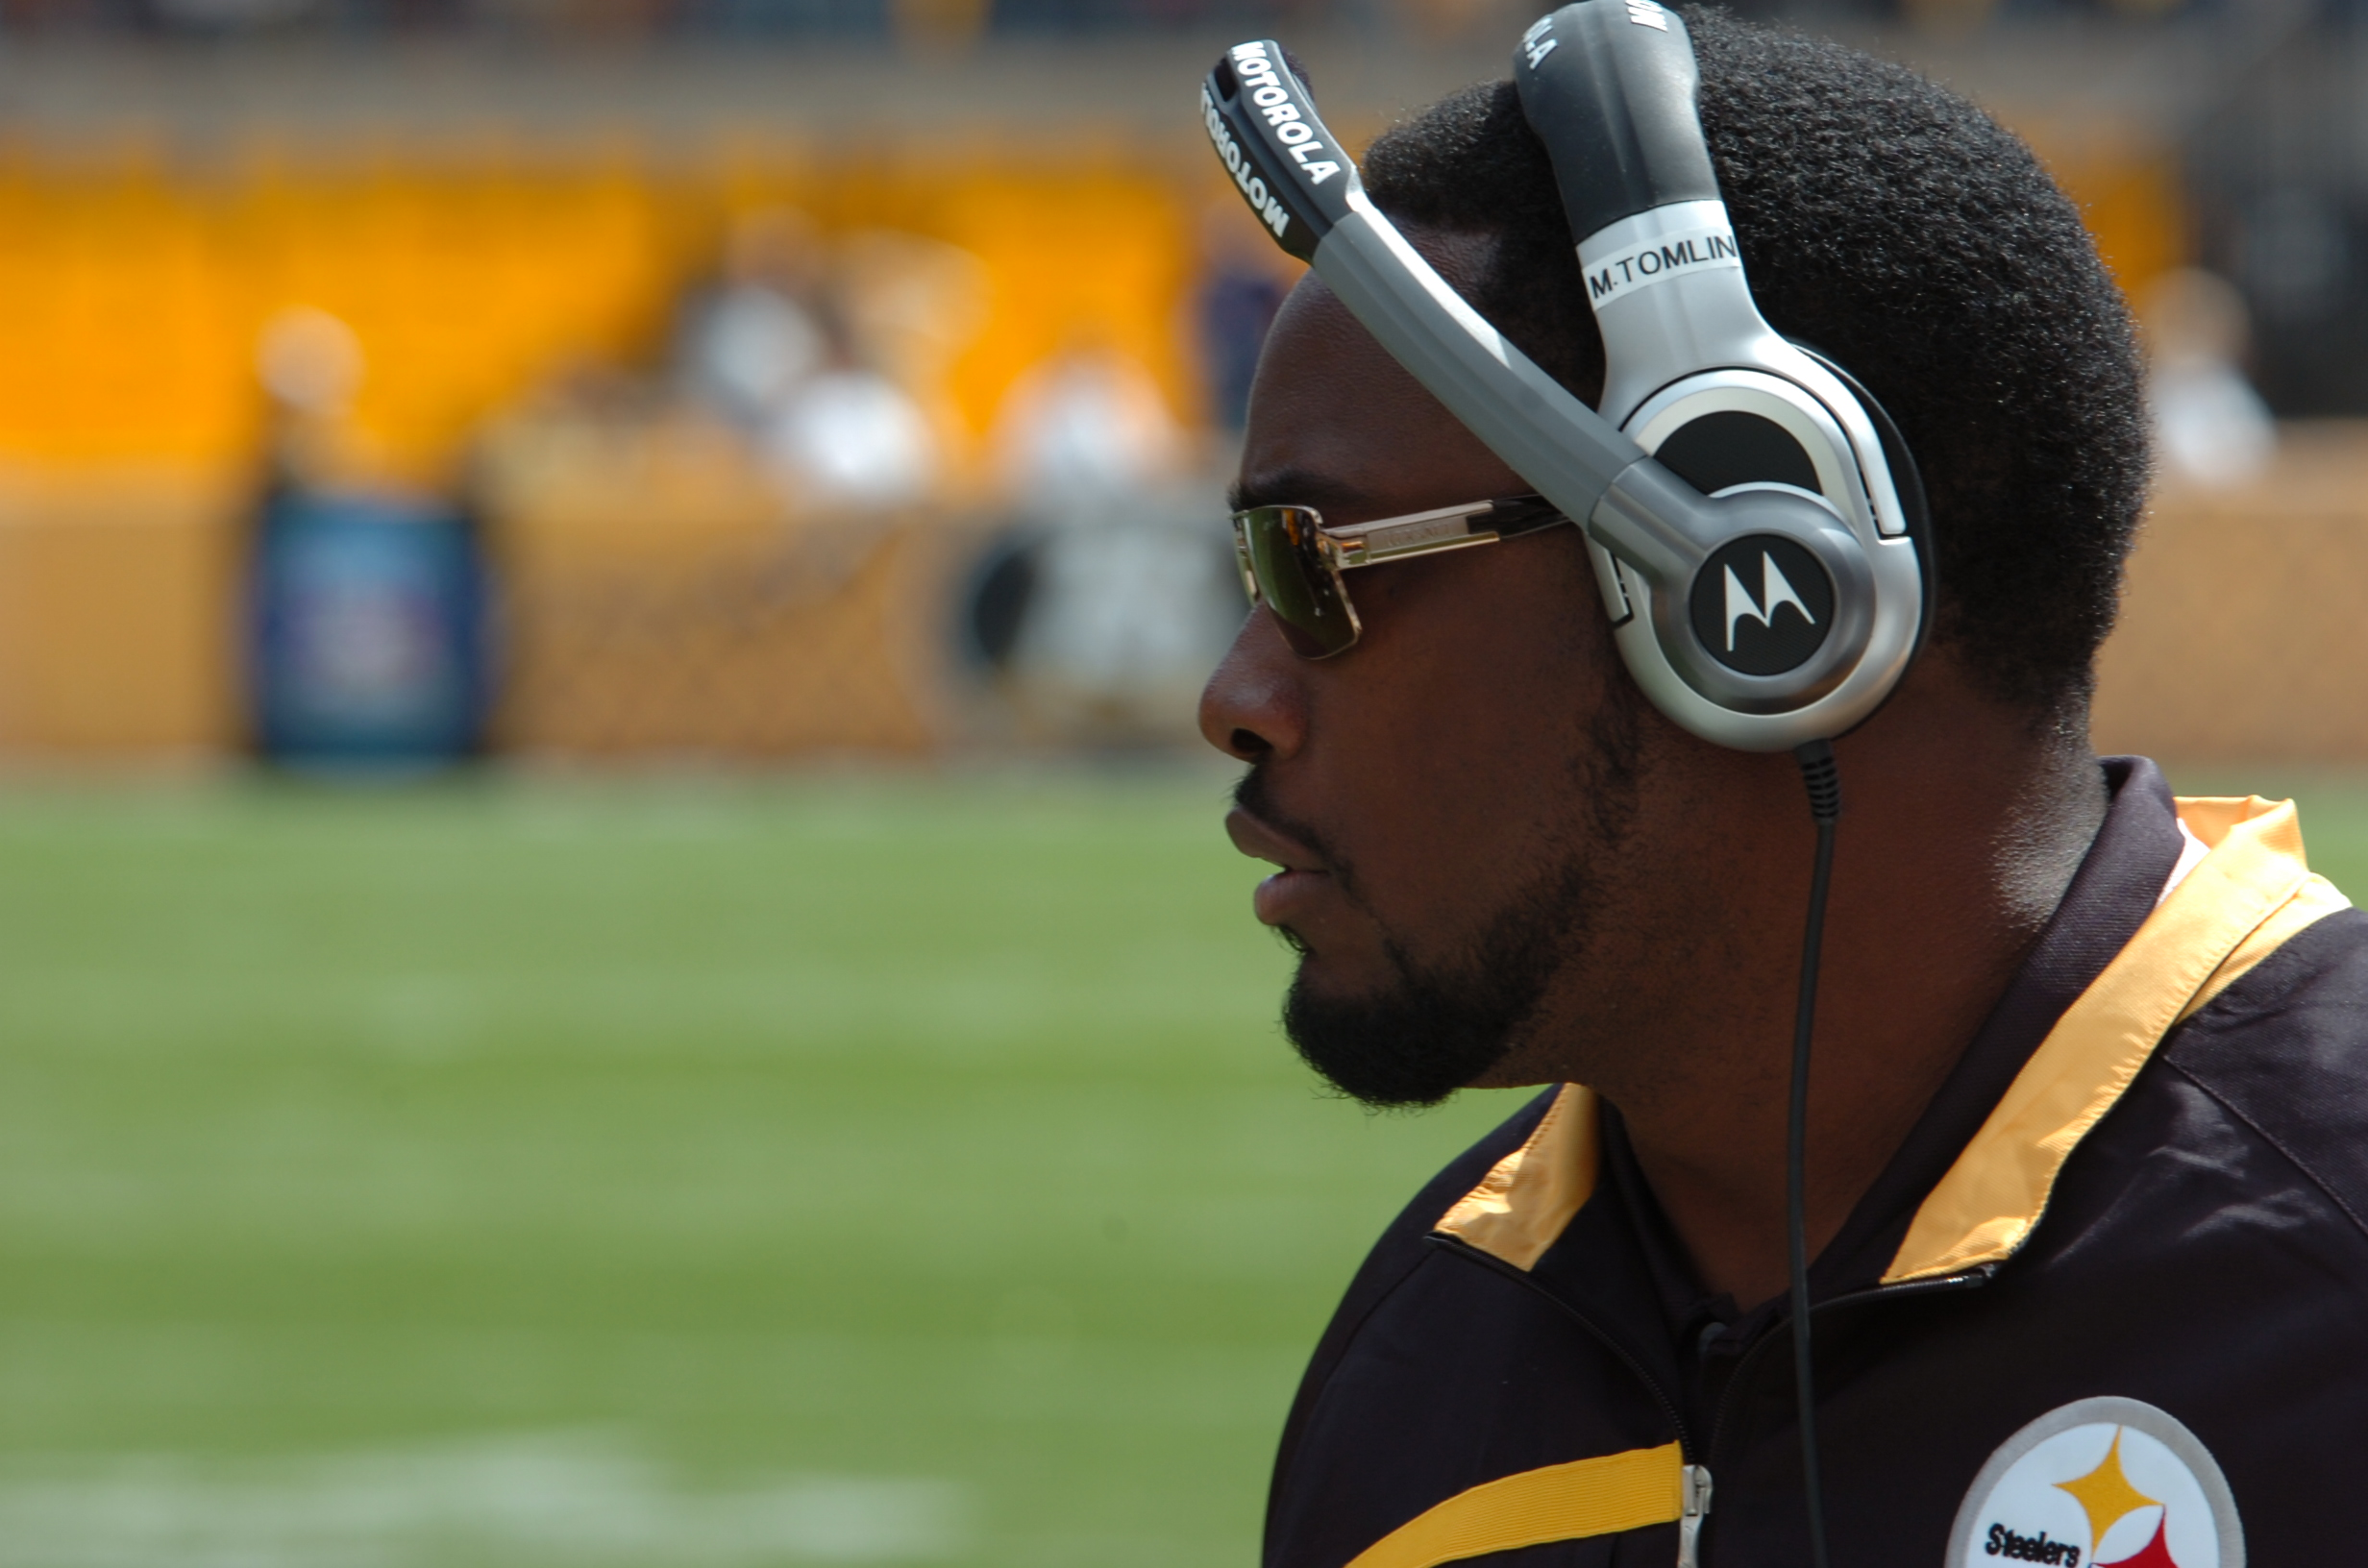 Mike Tomlin Coach of the 2009 Pittsburgh Steelers